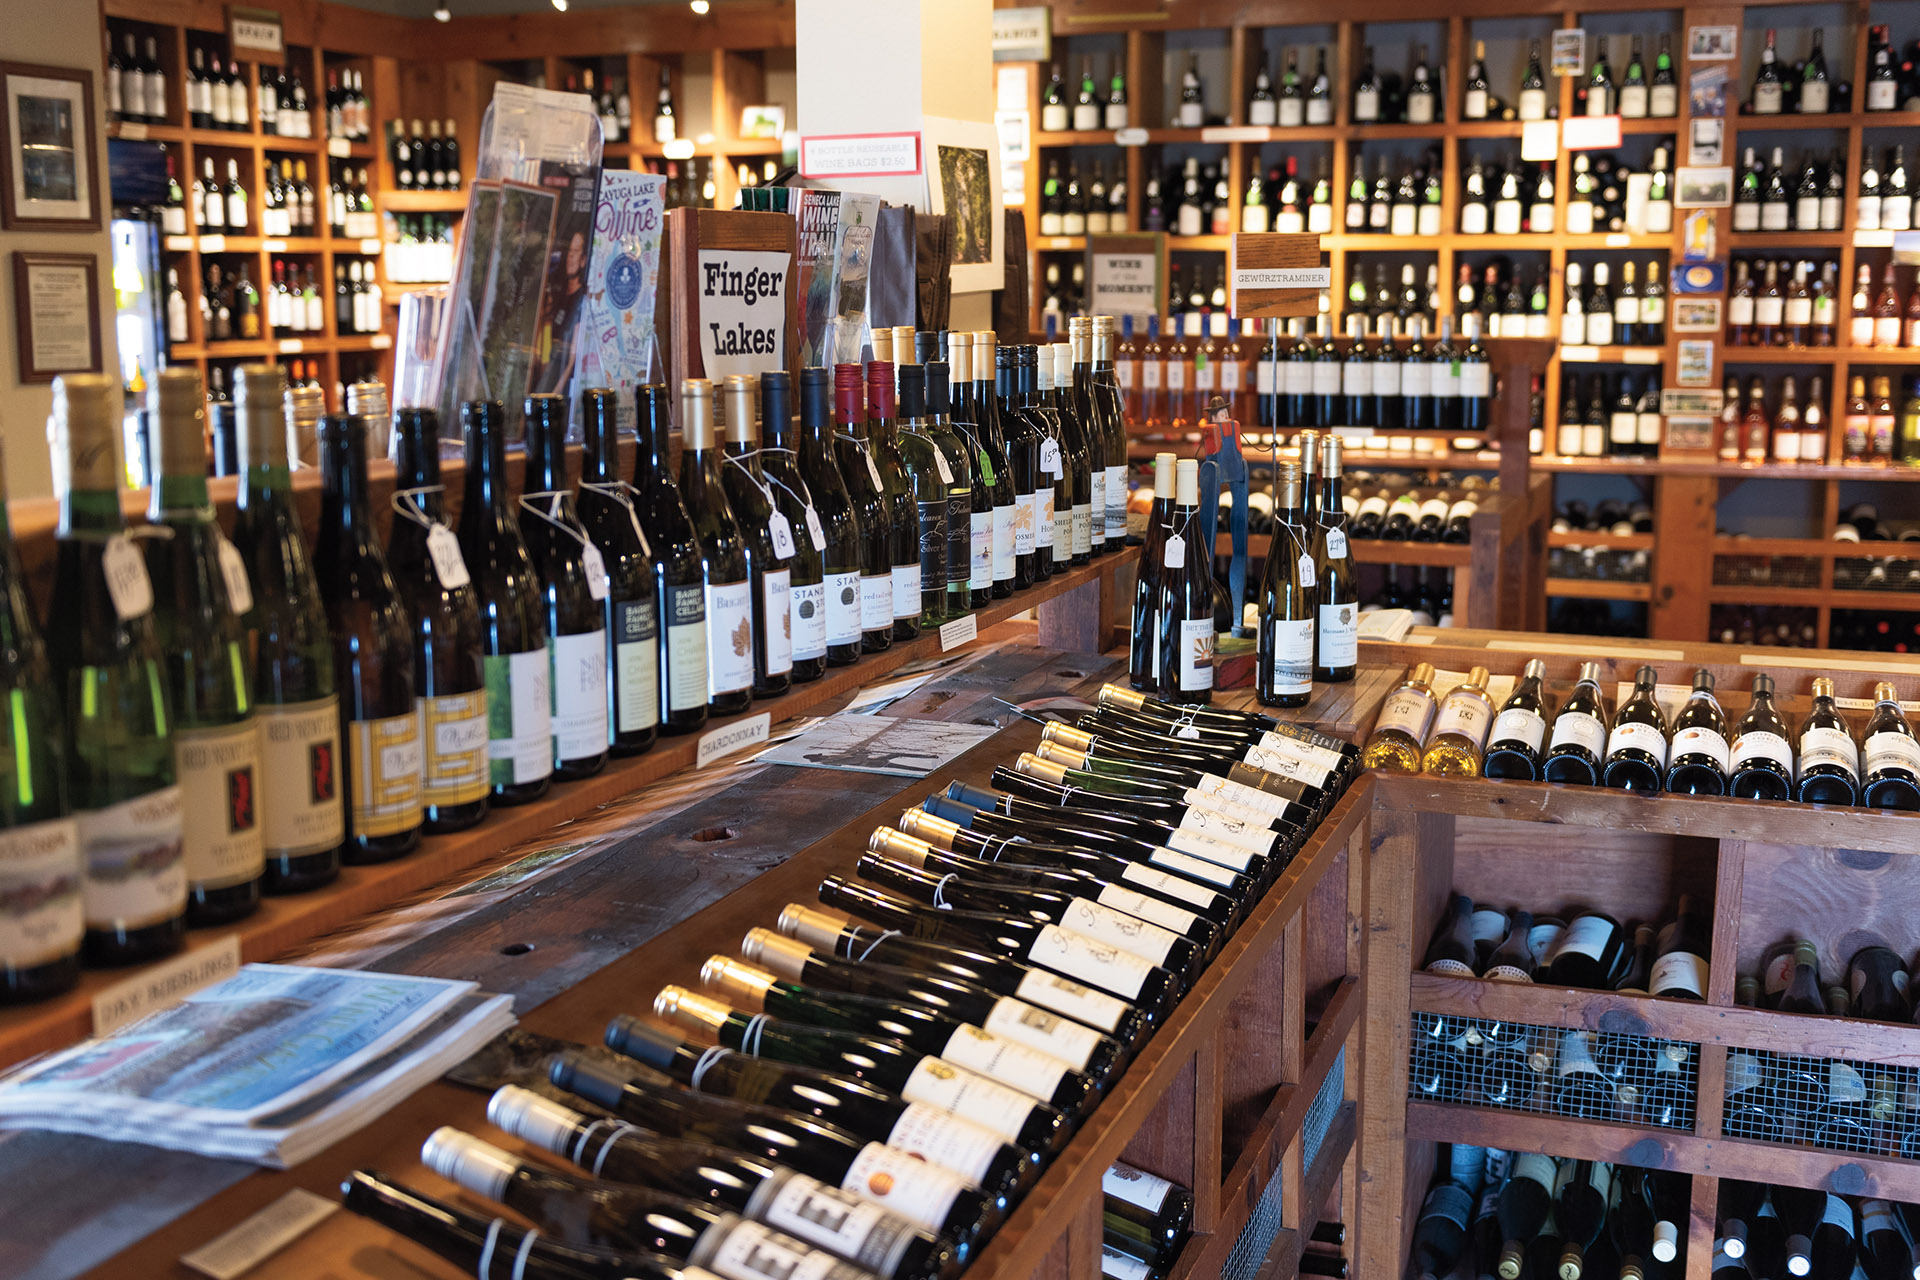 Interior of wine shop with a large Finger Lakes section